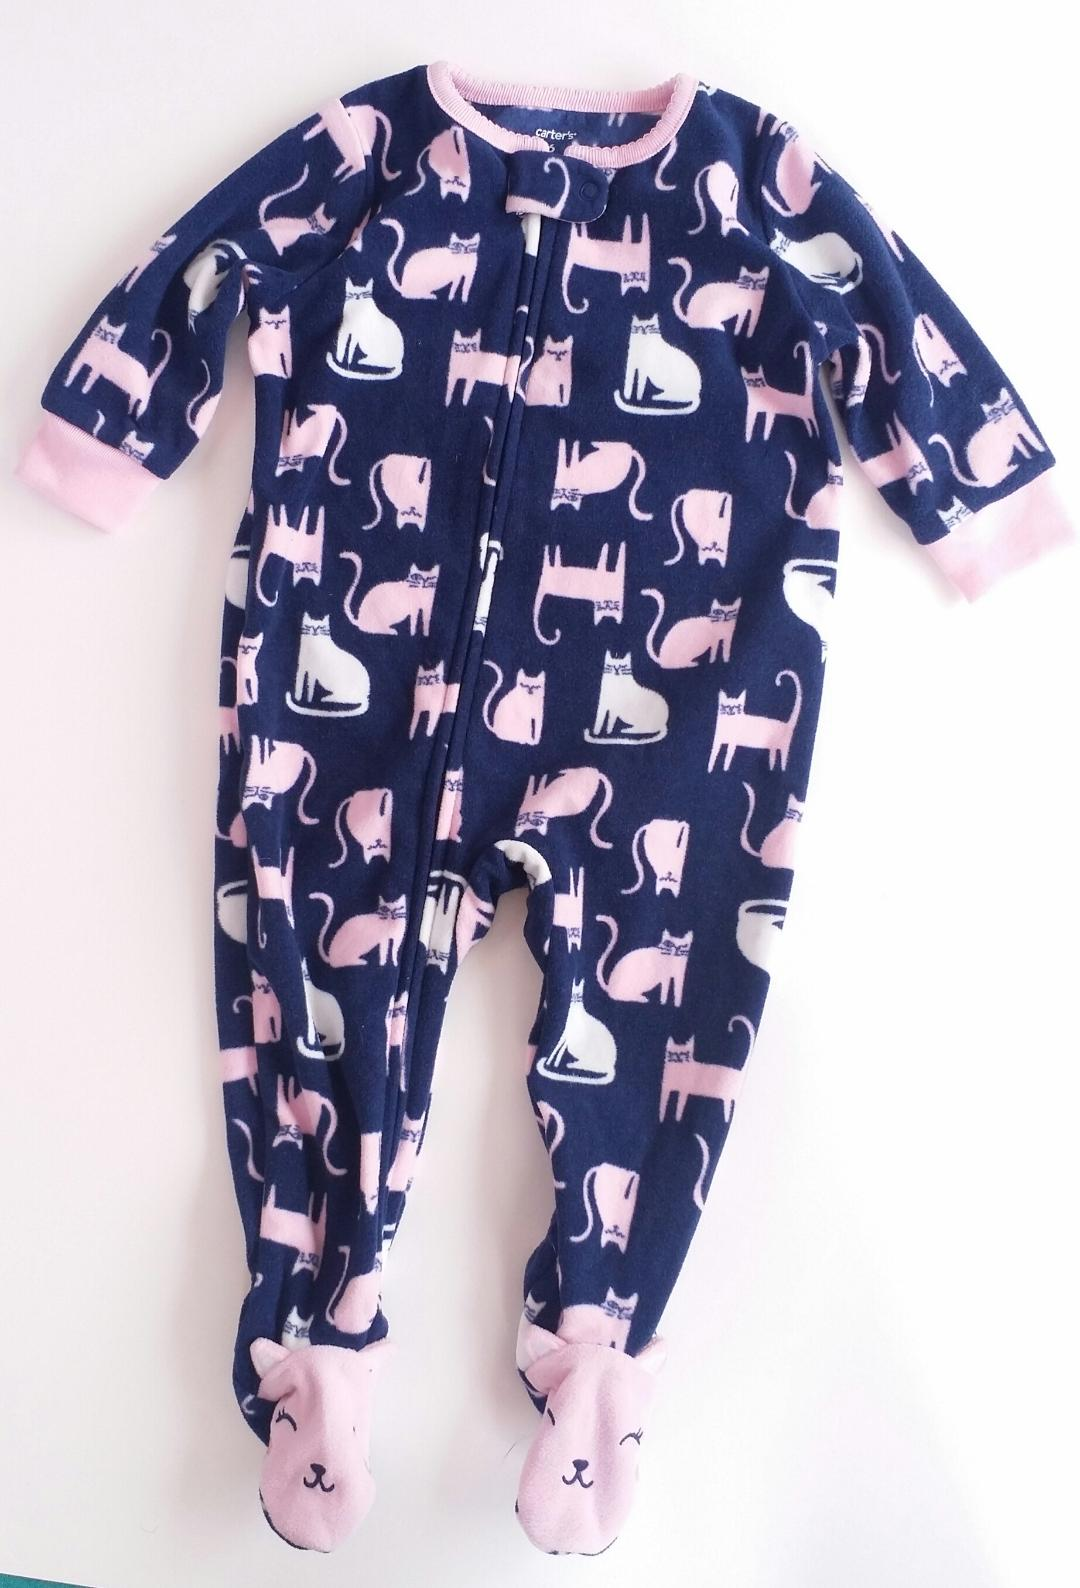 Carters-3-6-MONTHS-Cat-Print-Fleece-Pajamas 2121286A. e28f3a489